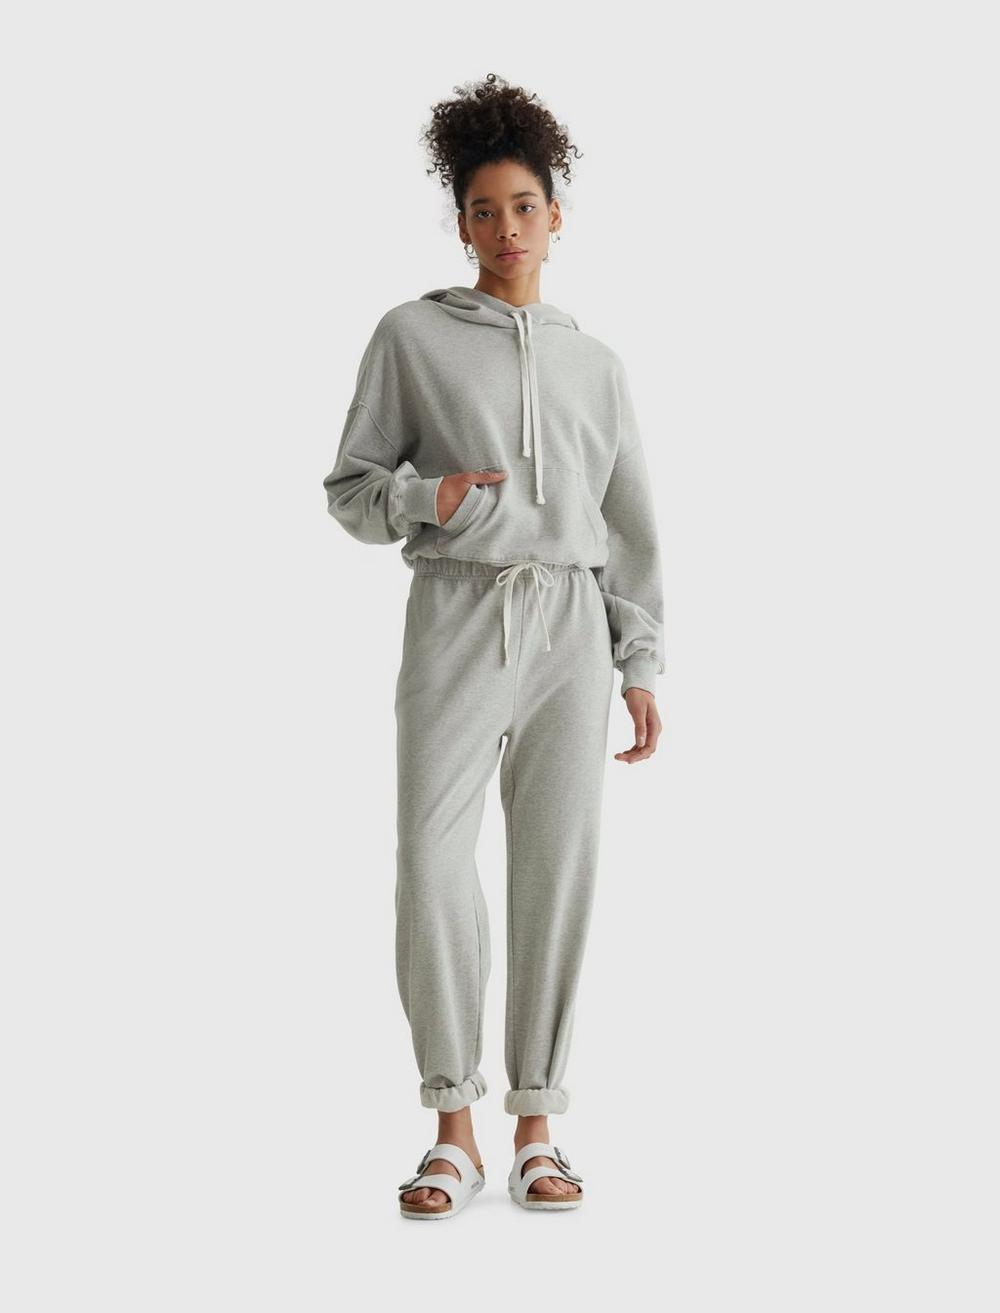 CHILL AT HOME FLEECE JOGGER, image 2